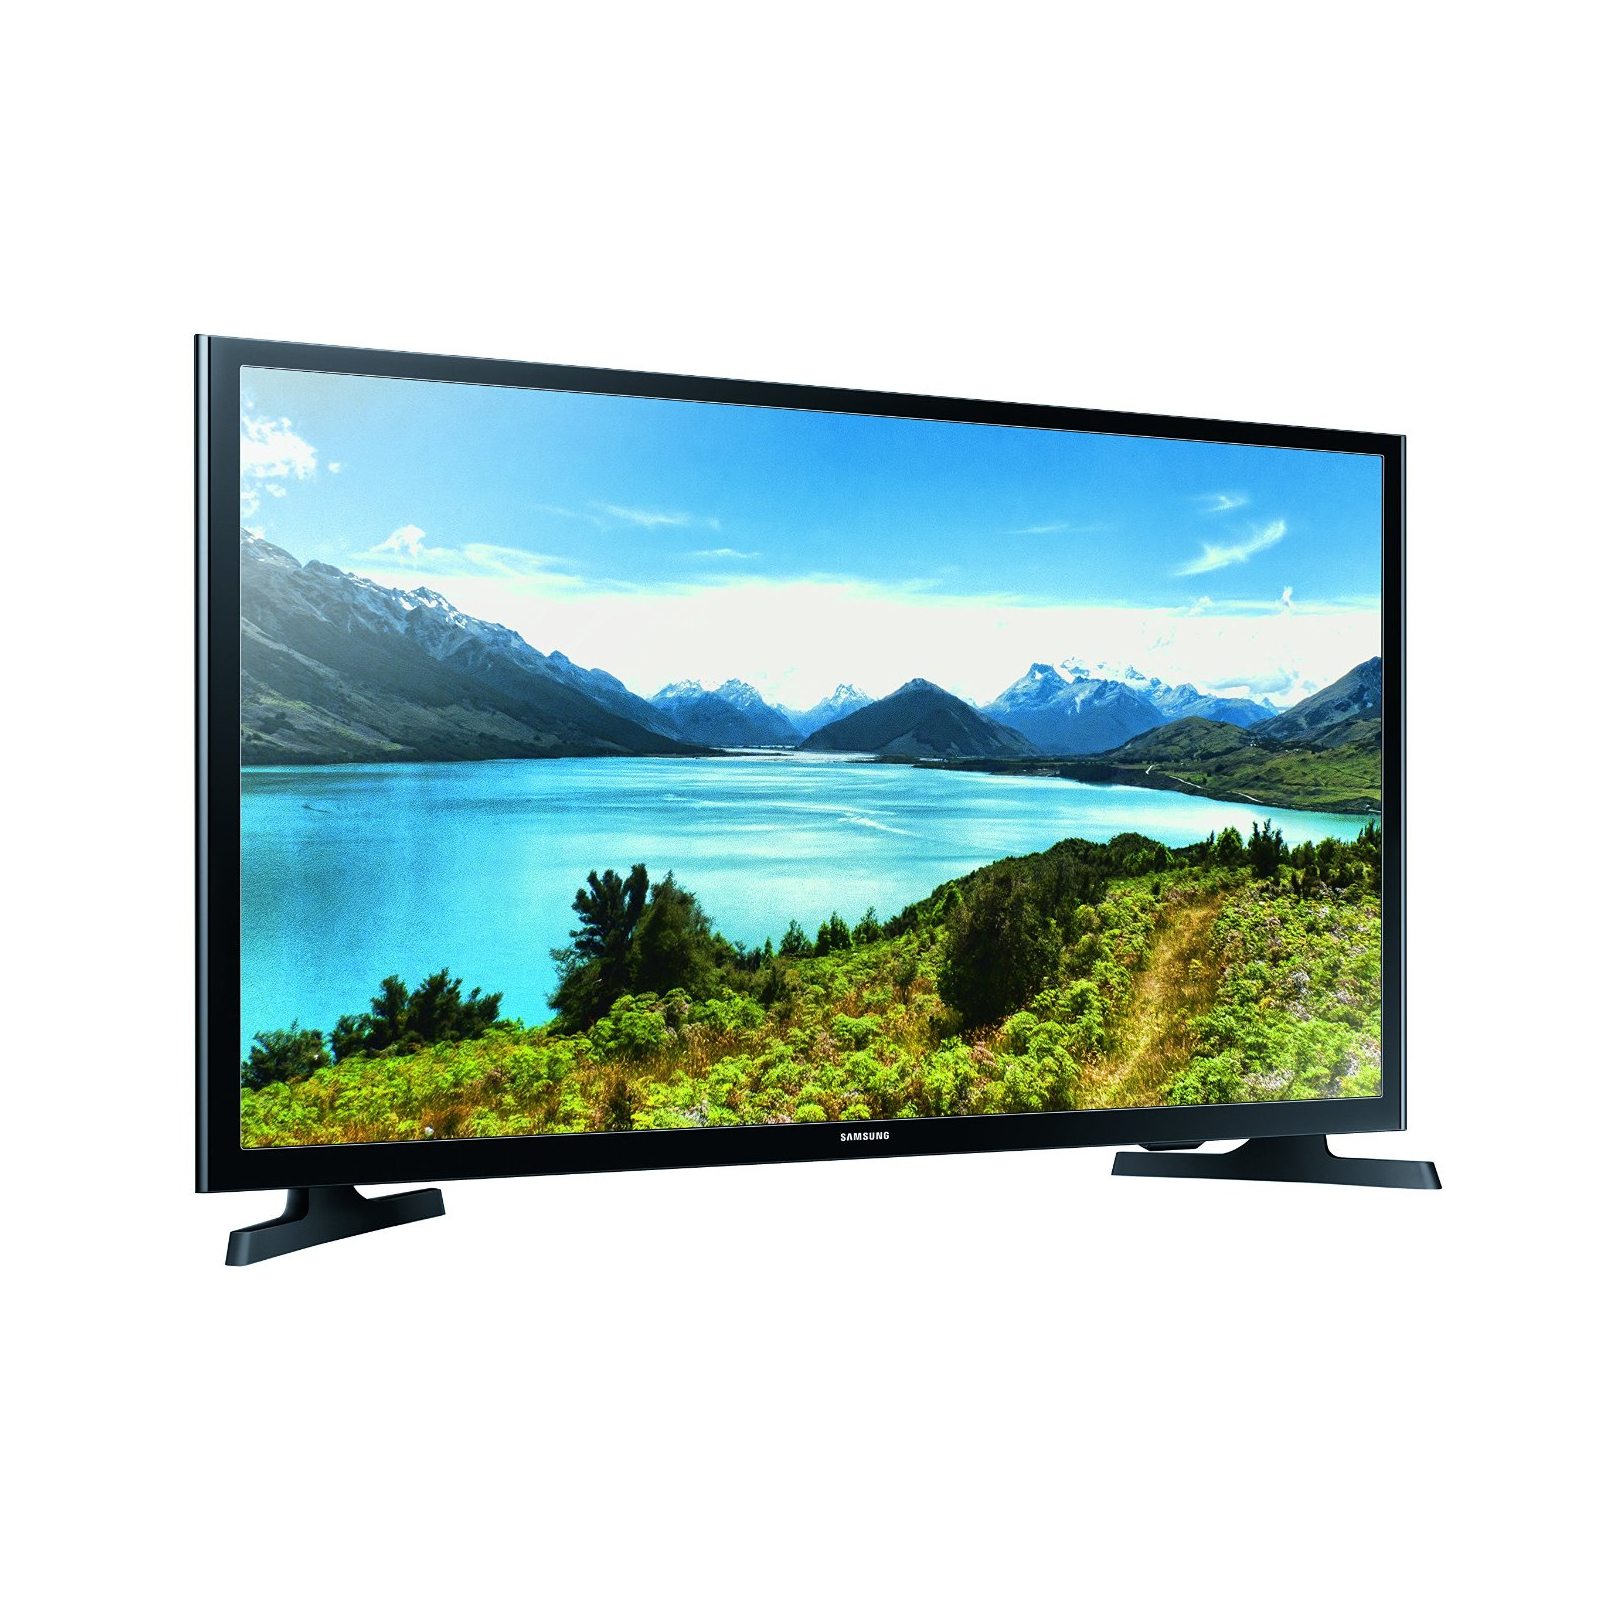 samsung hd led tv fernseher 80 cm 32 zoll bildschirm ue32j4000 uvp 399 00 trade4less. Black Bedroom Furniture Sets. Home Design Ideas